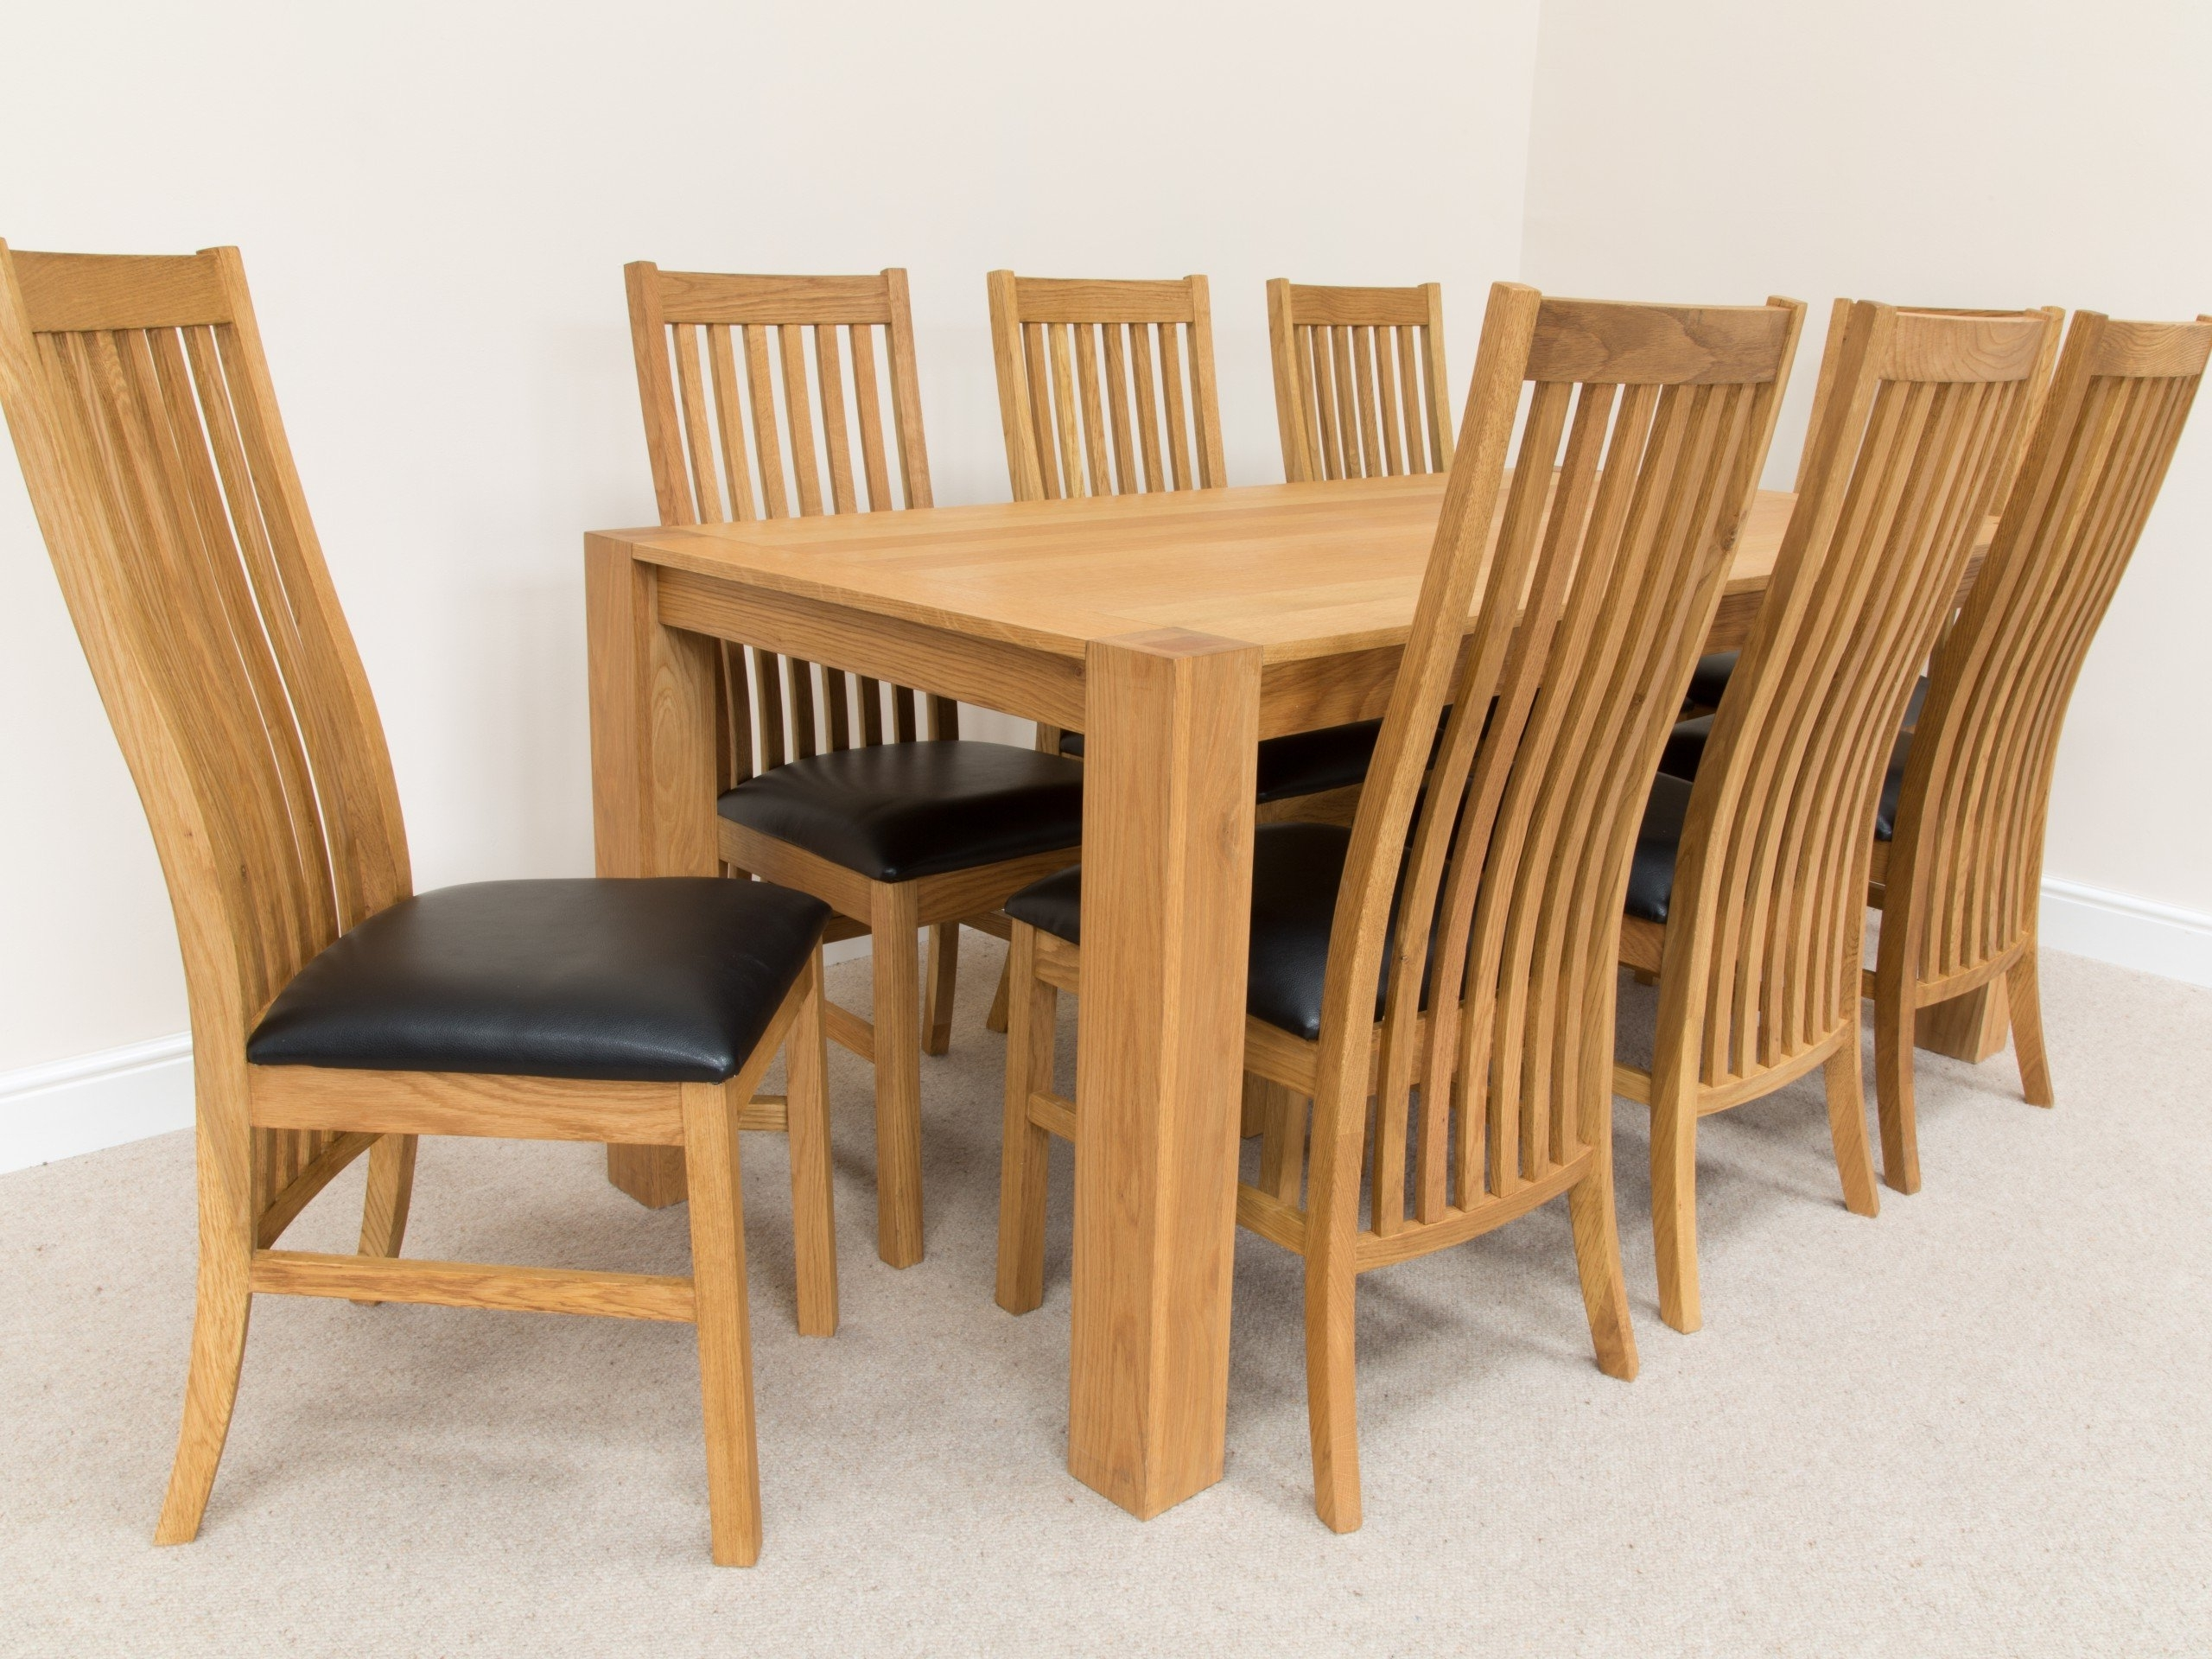 Oak Dining Tables And 8 Chairs Regarding Widely Used Dining Room Table : Square Oak Dining Table For 8 Modern Dining (View 25 of 25)